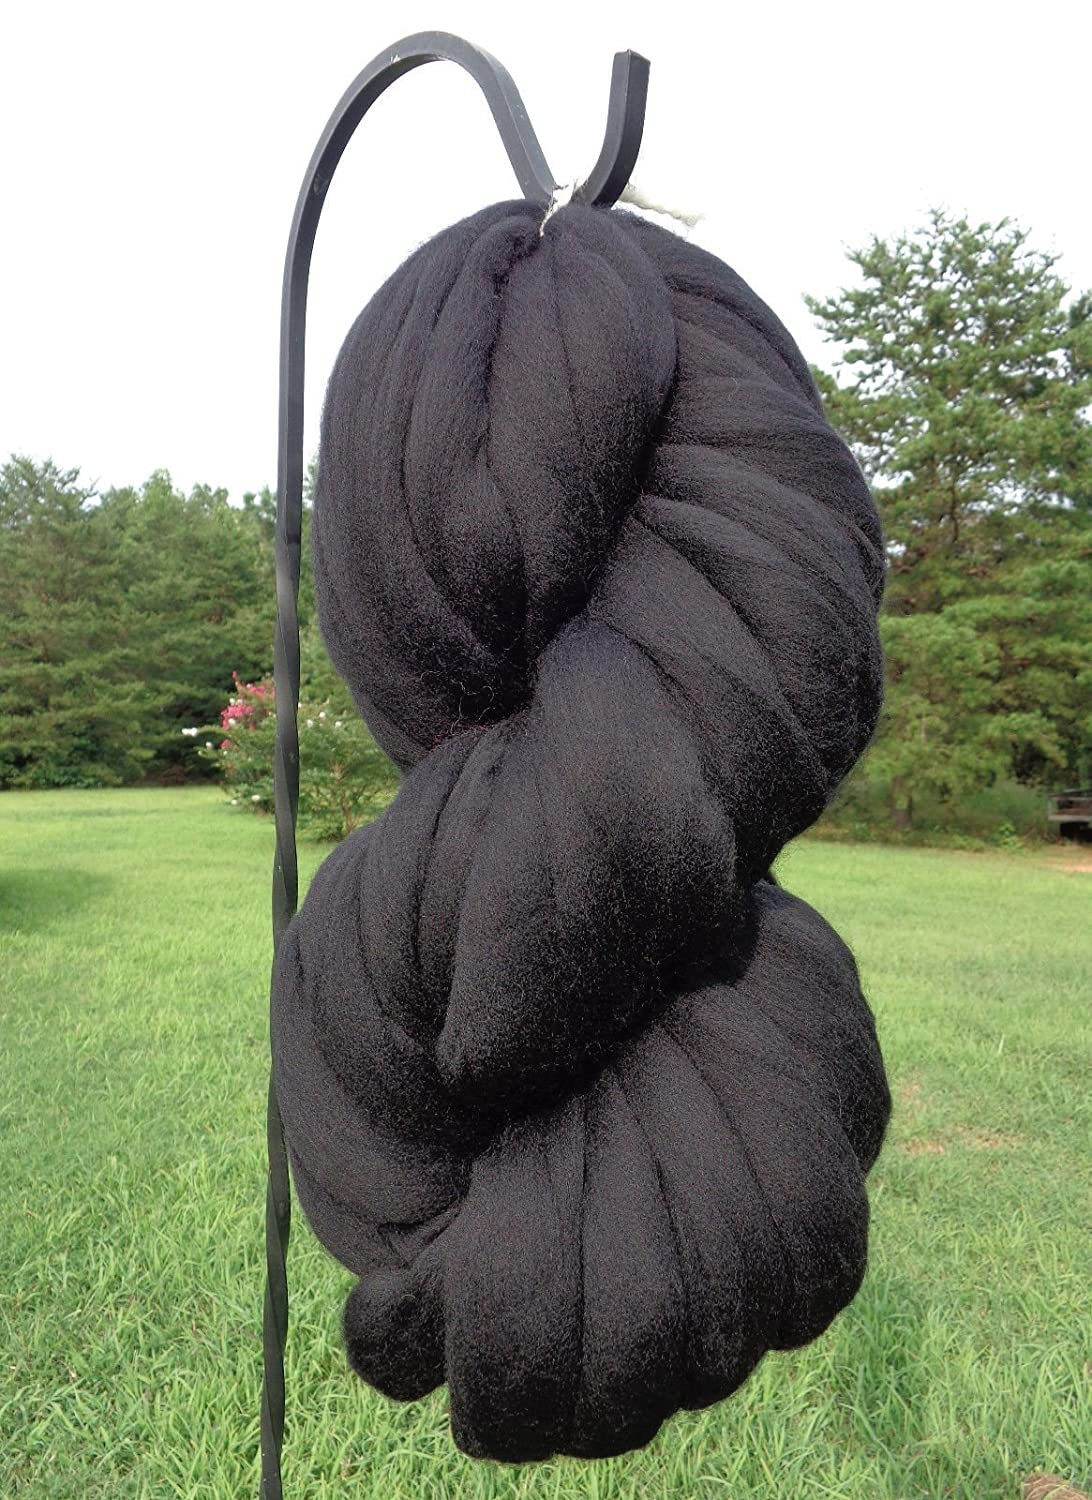 Black Noir Wool Top Roving Fiber Spinning, Felting Crafts USA (1lb) Shep' s Wool 4336906564